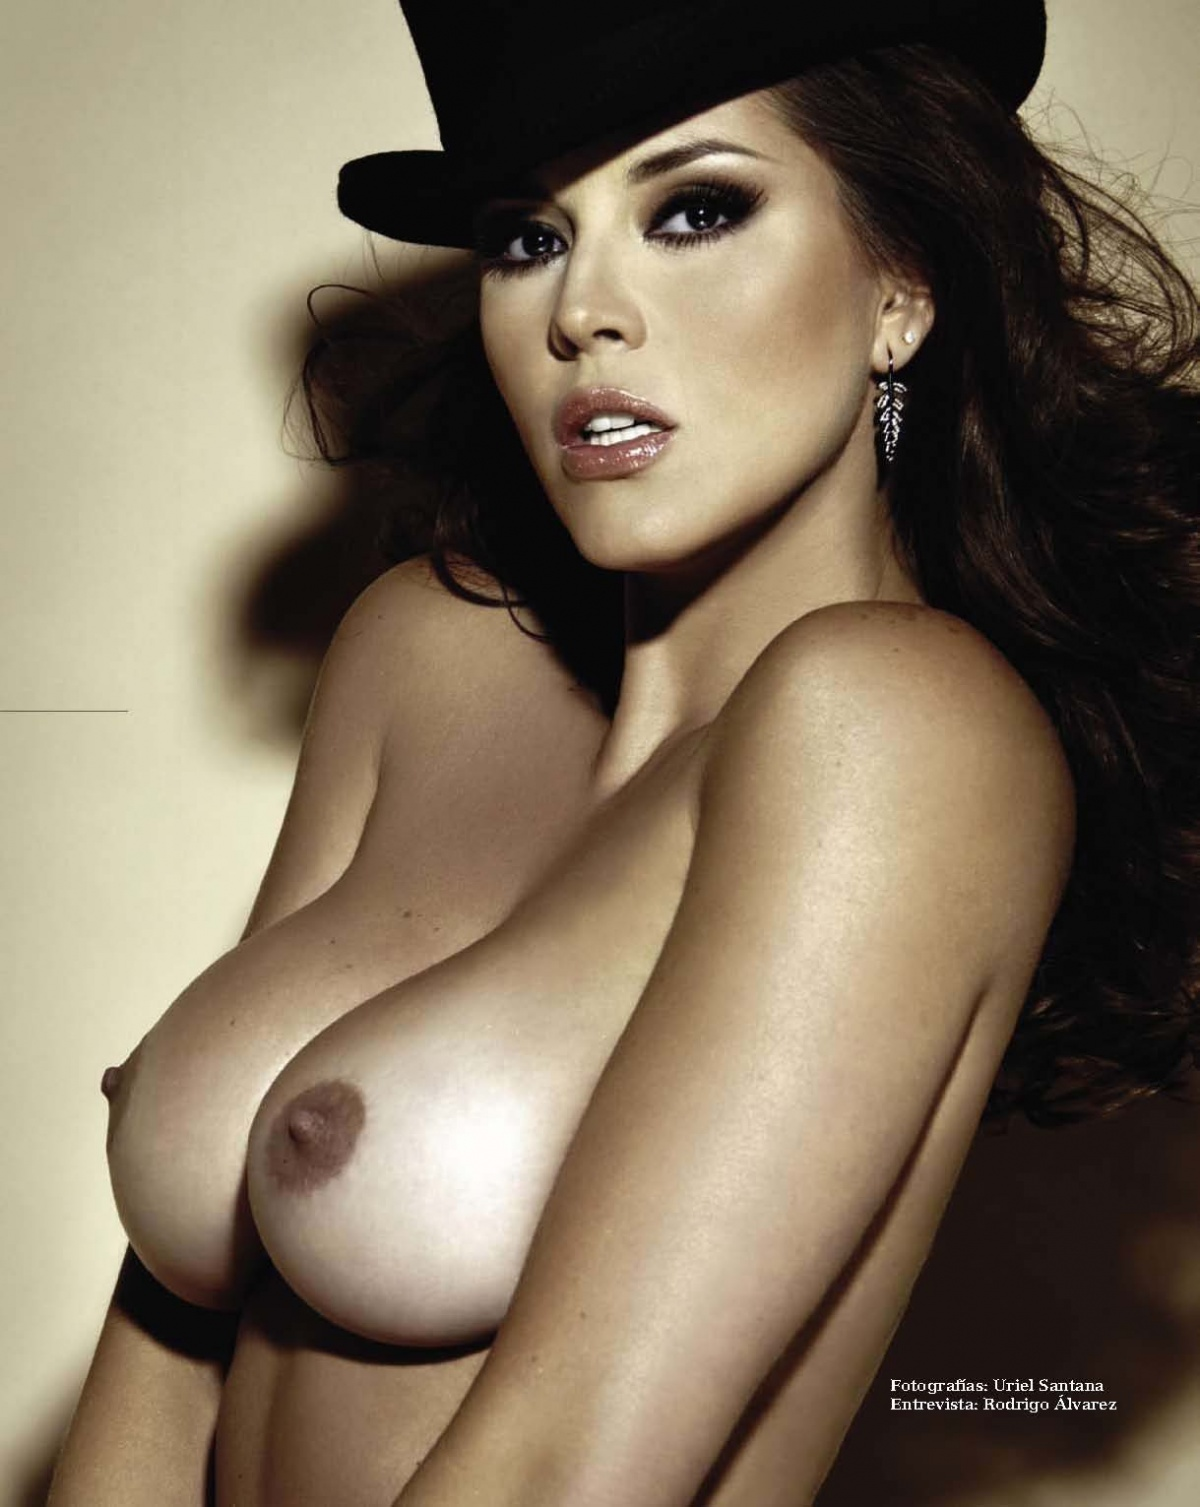 Sin Censura Alicia Machado Desnuda Porno Fotos